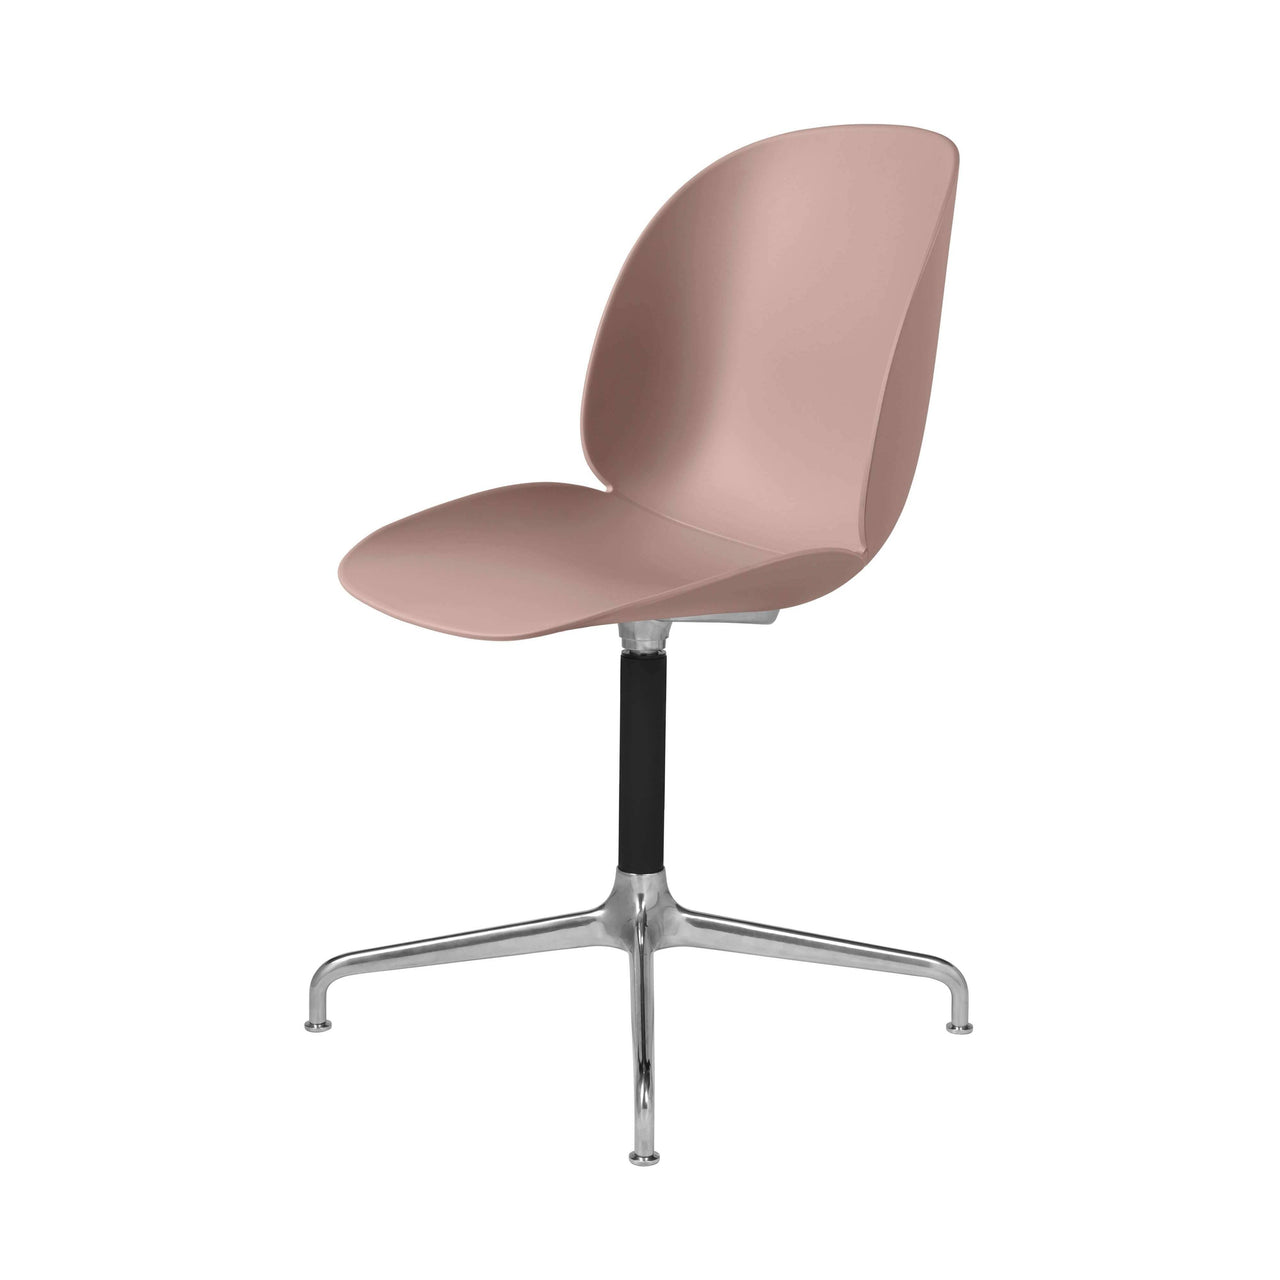 Beetle Meeting Chair: 4-Star Swivel Base: Sweet Pink + Polished Aluminum + Black Matte Base + Plastic Glides